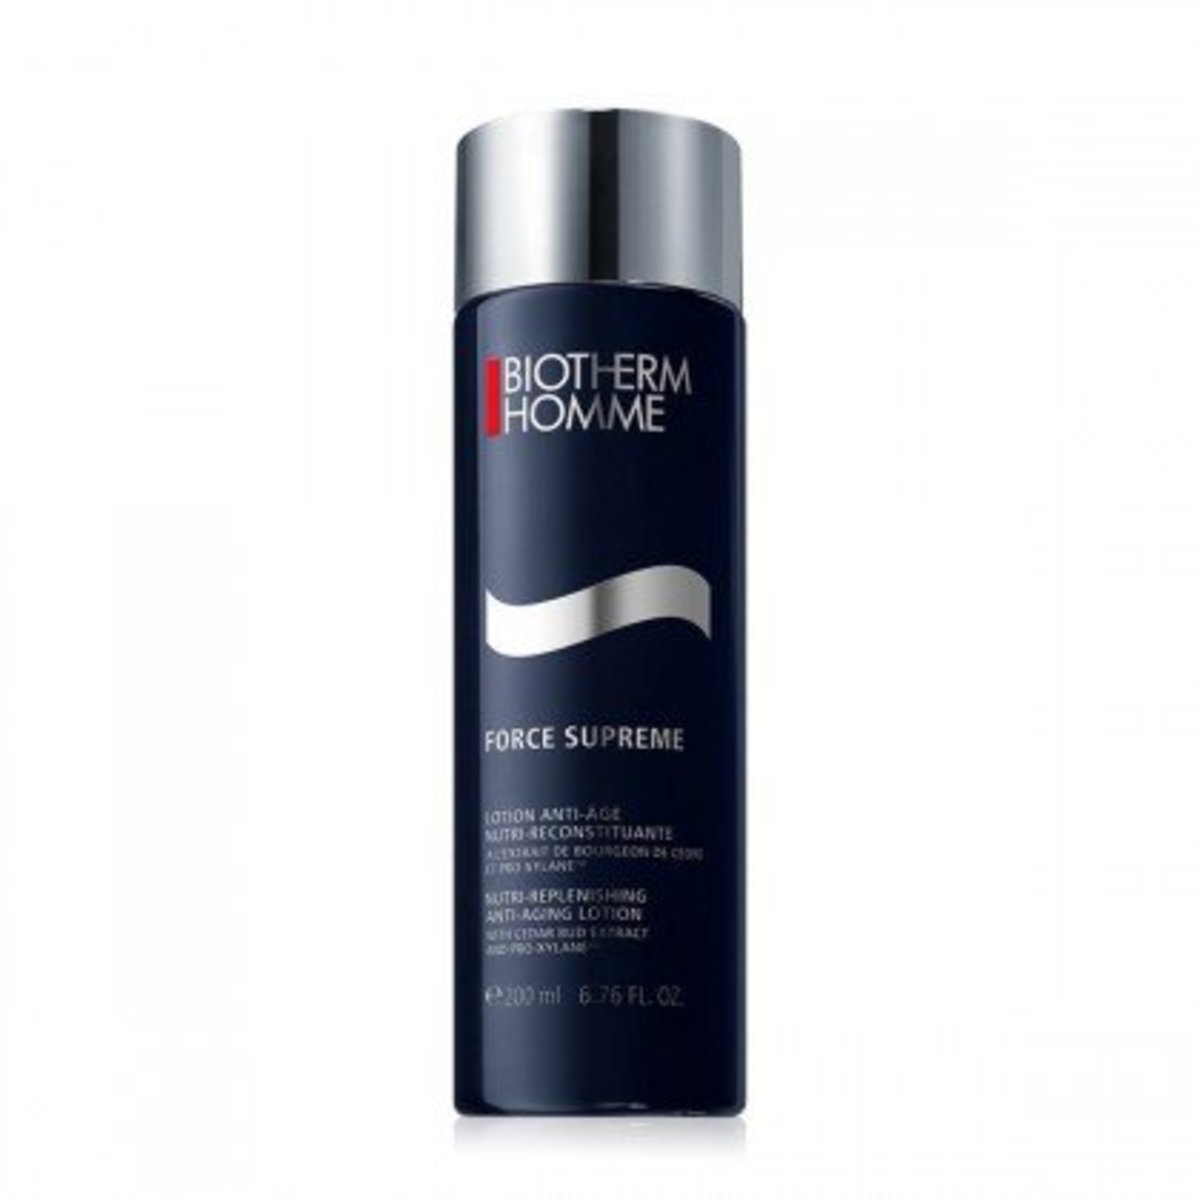 Force Supreme Anti-Aging Lotion (Parallel Import)